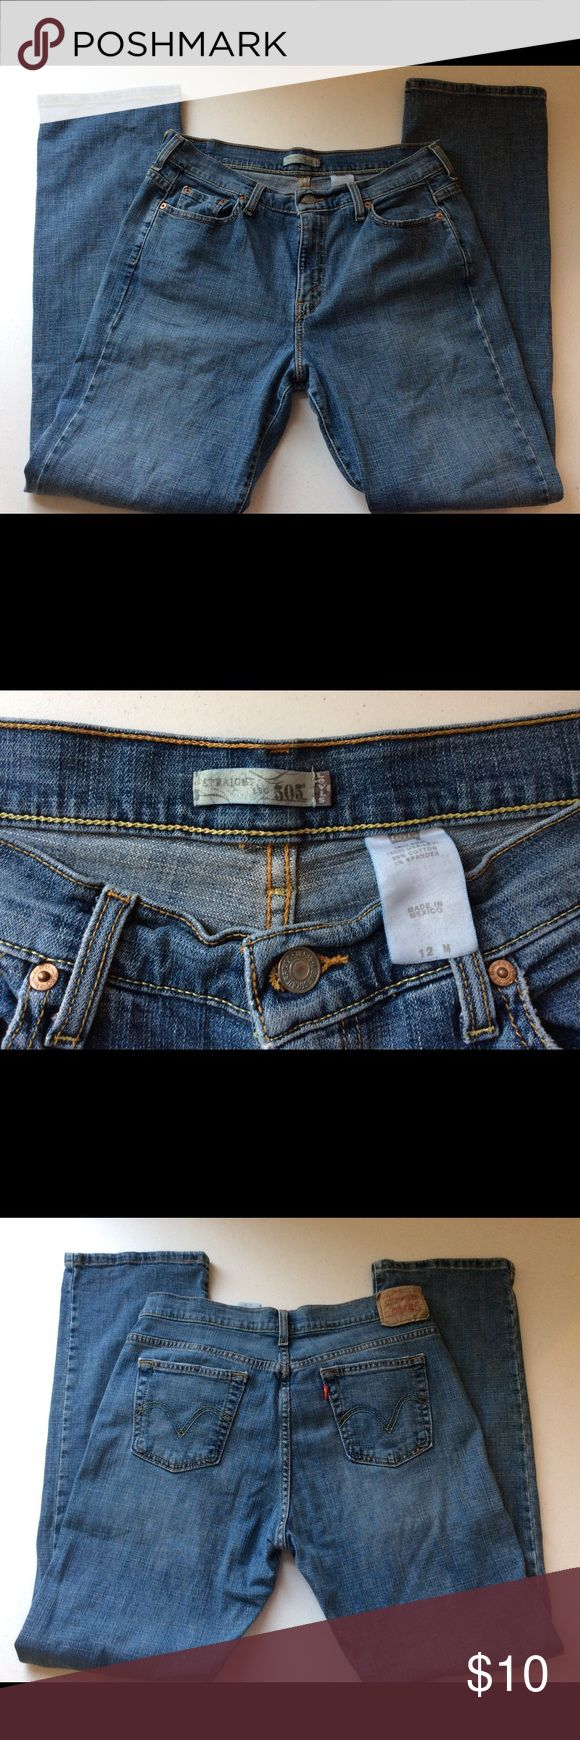 Levi's 505 Women's Straight Jeans Size 12m Levi's 505 Women's Straight Jeans Size 12m  Excellent Condition!                                     Size: 12m Inseam 32                There are no stains or holes in item.  The zipper works excellent and all buttons are secure.  Smoke-free and Pet-free home. Levi's Jeans Straight Leg